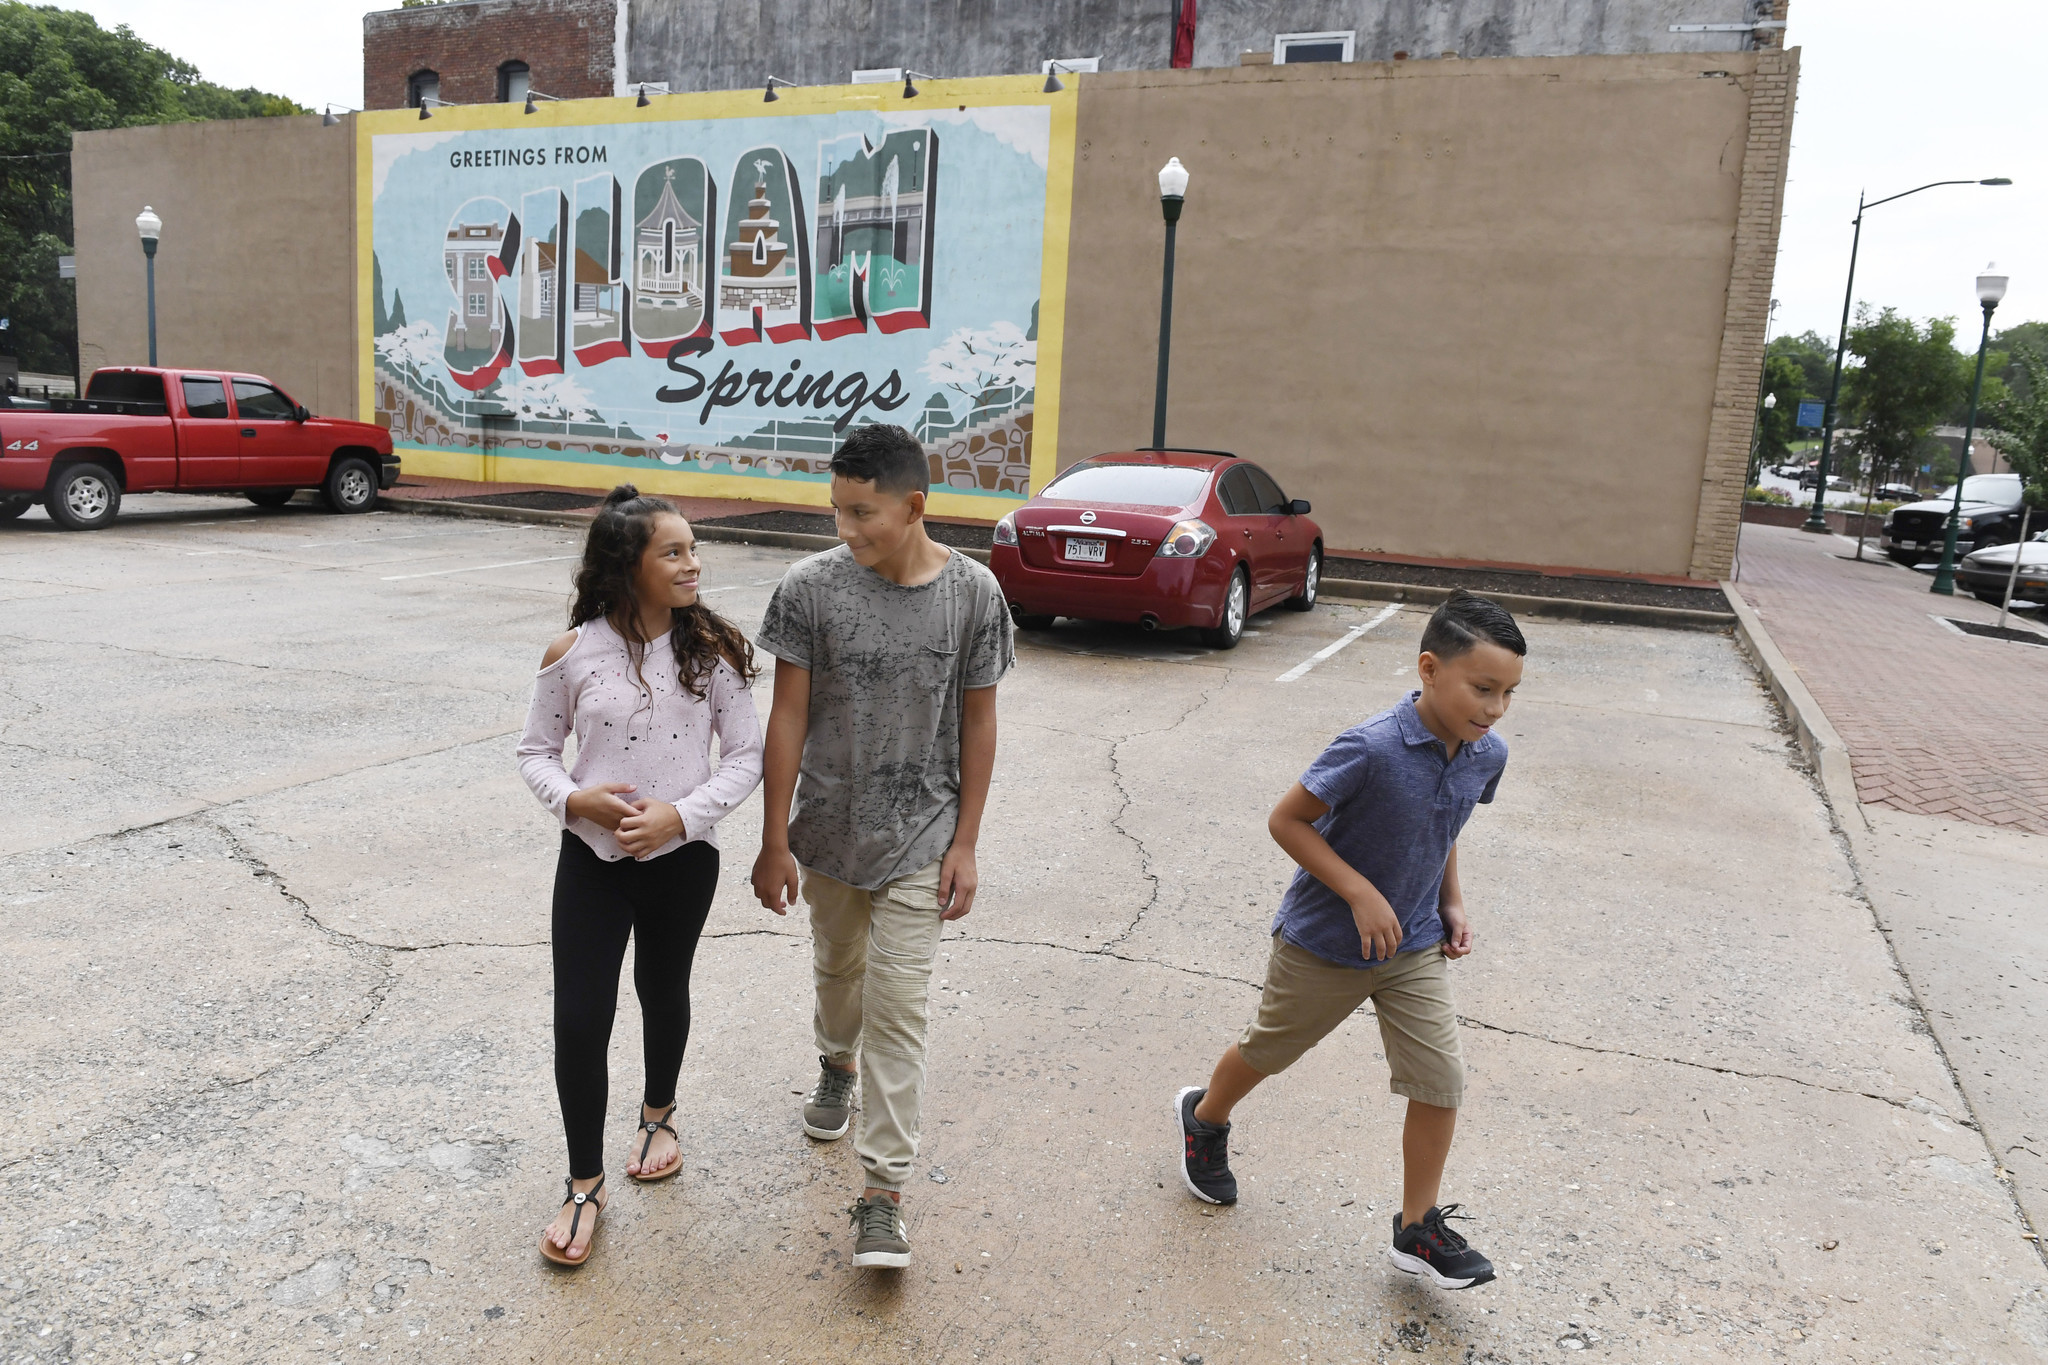 (Left to right) Dyanara Solis, 11, Dominic Solis, 12, and Dorian Solis, 8, walk through a parking lo